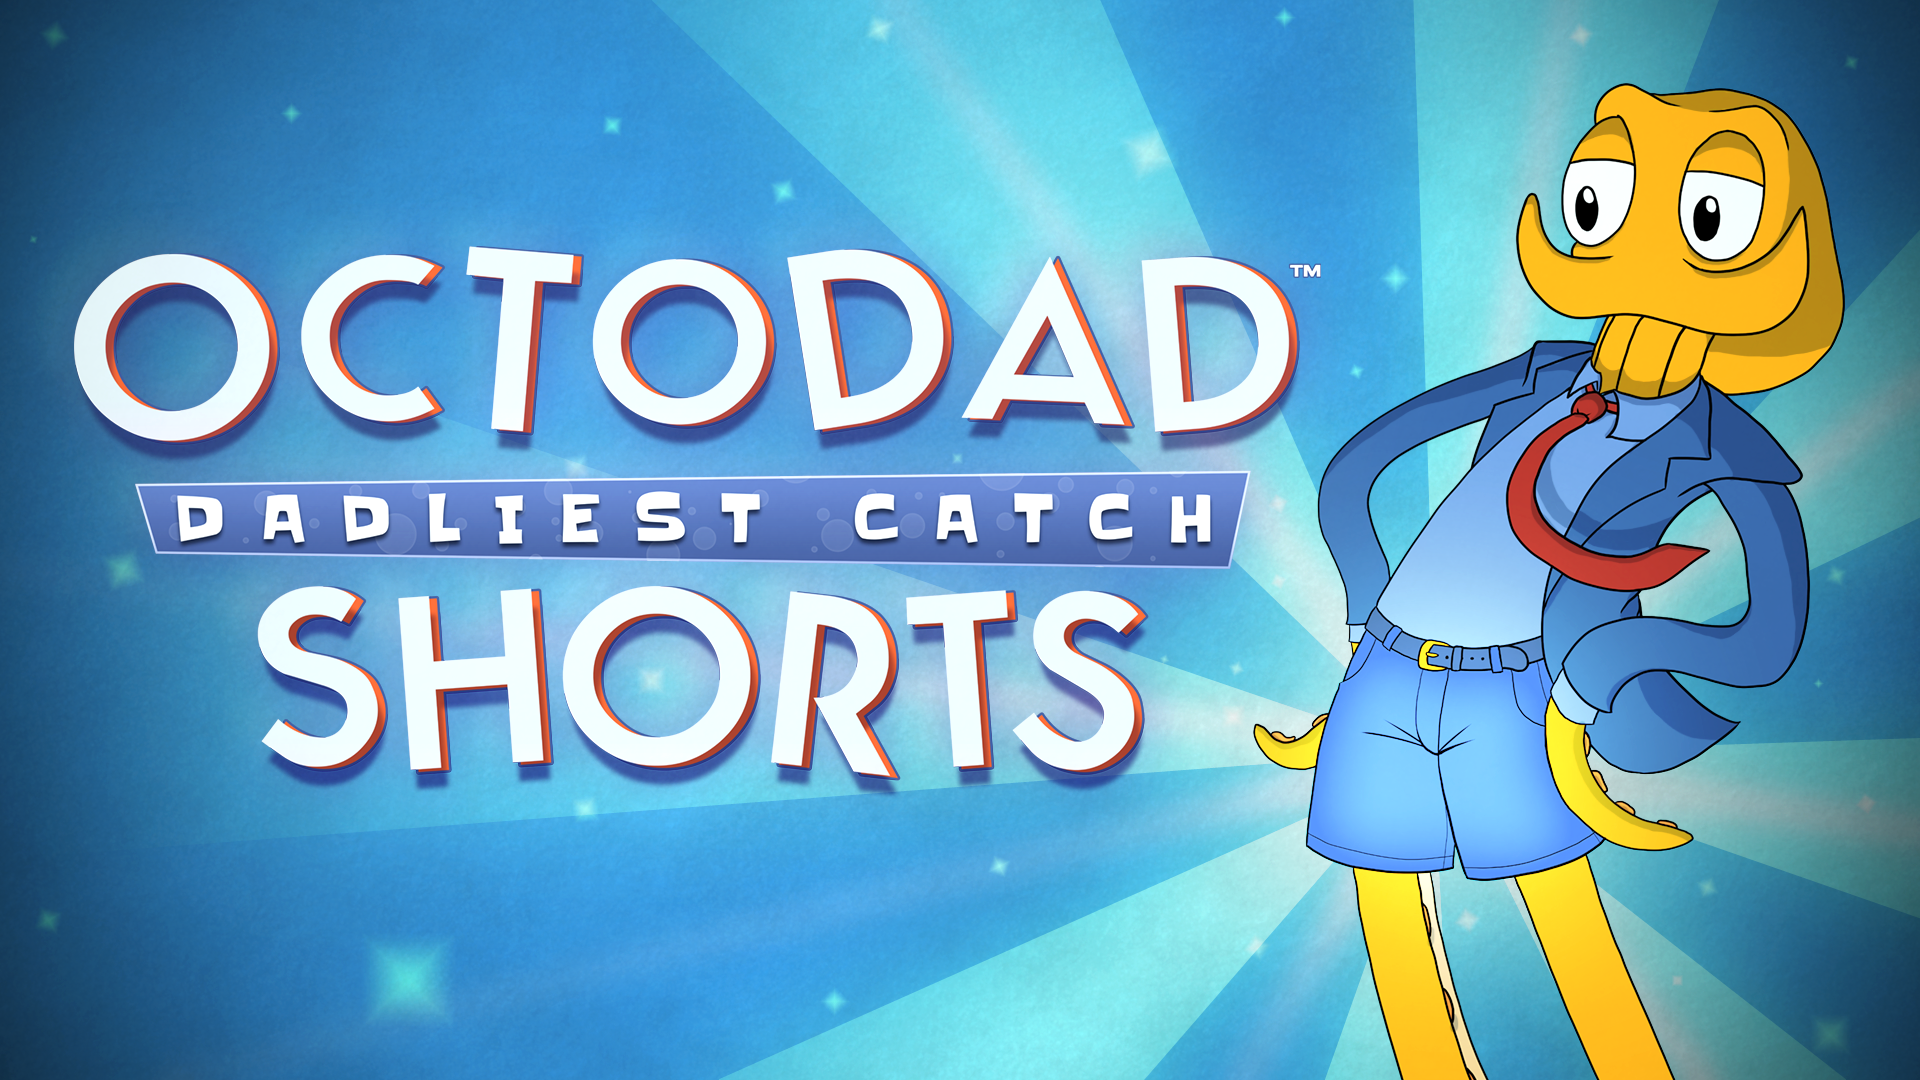 octodad dadliest catch apk here